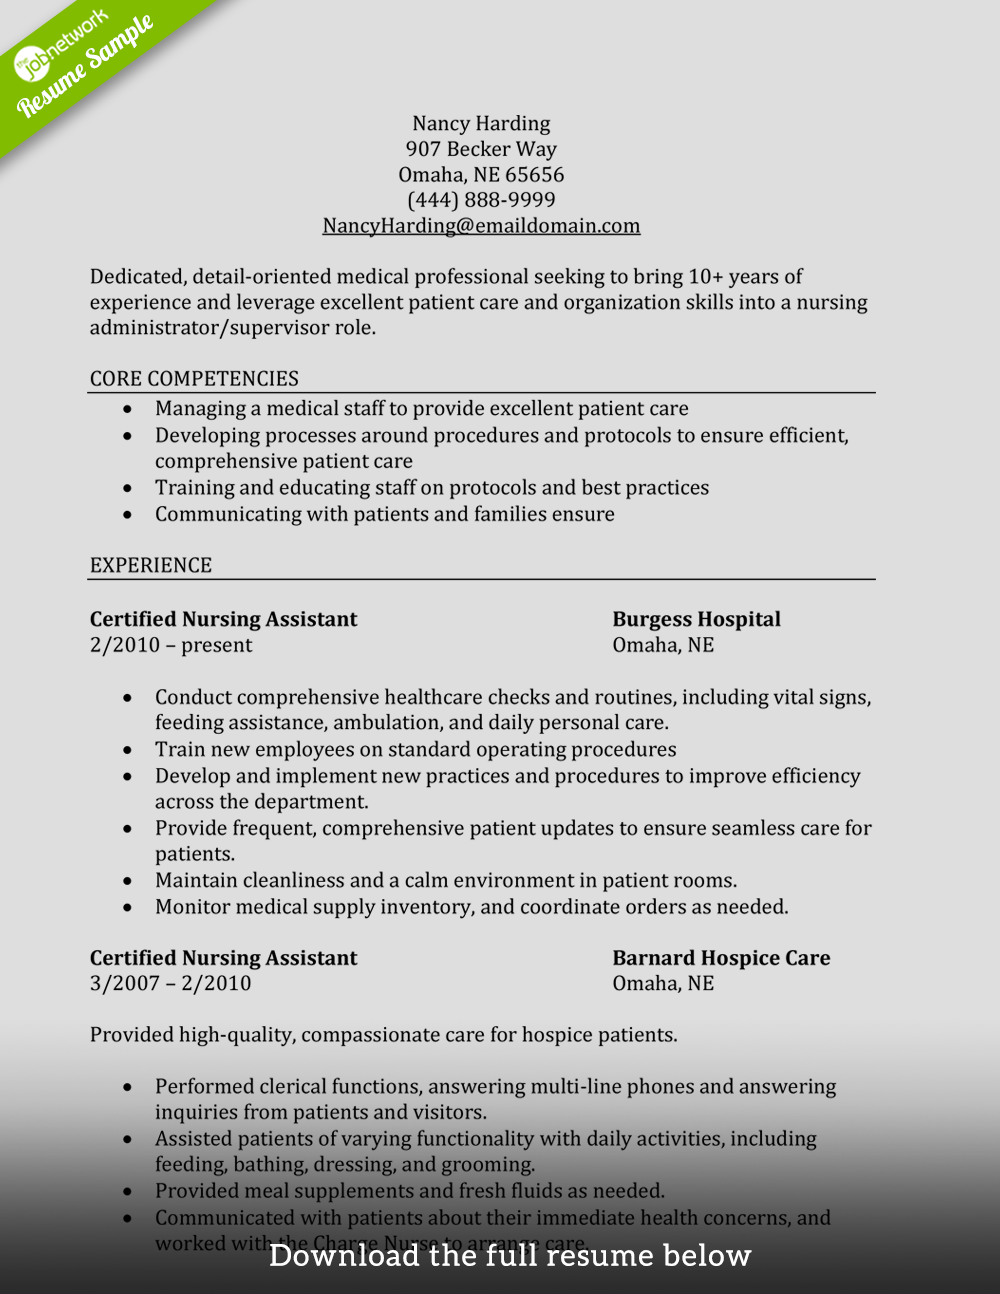 Resume Perfect Cna Resume how to write a perfect cna resume examples included changing fields